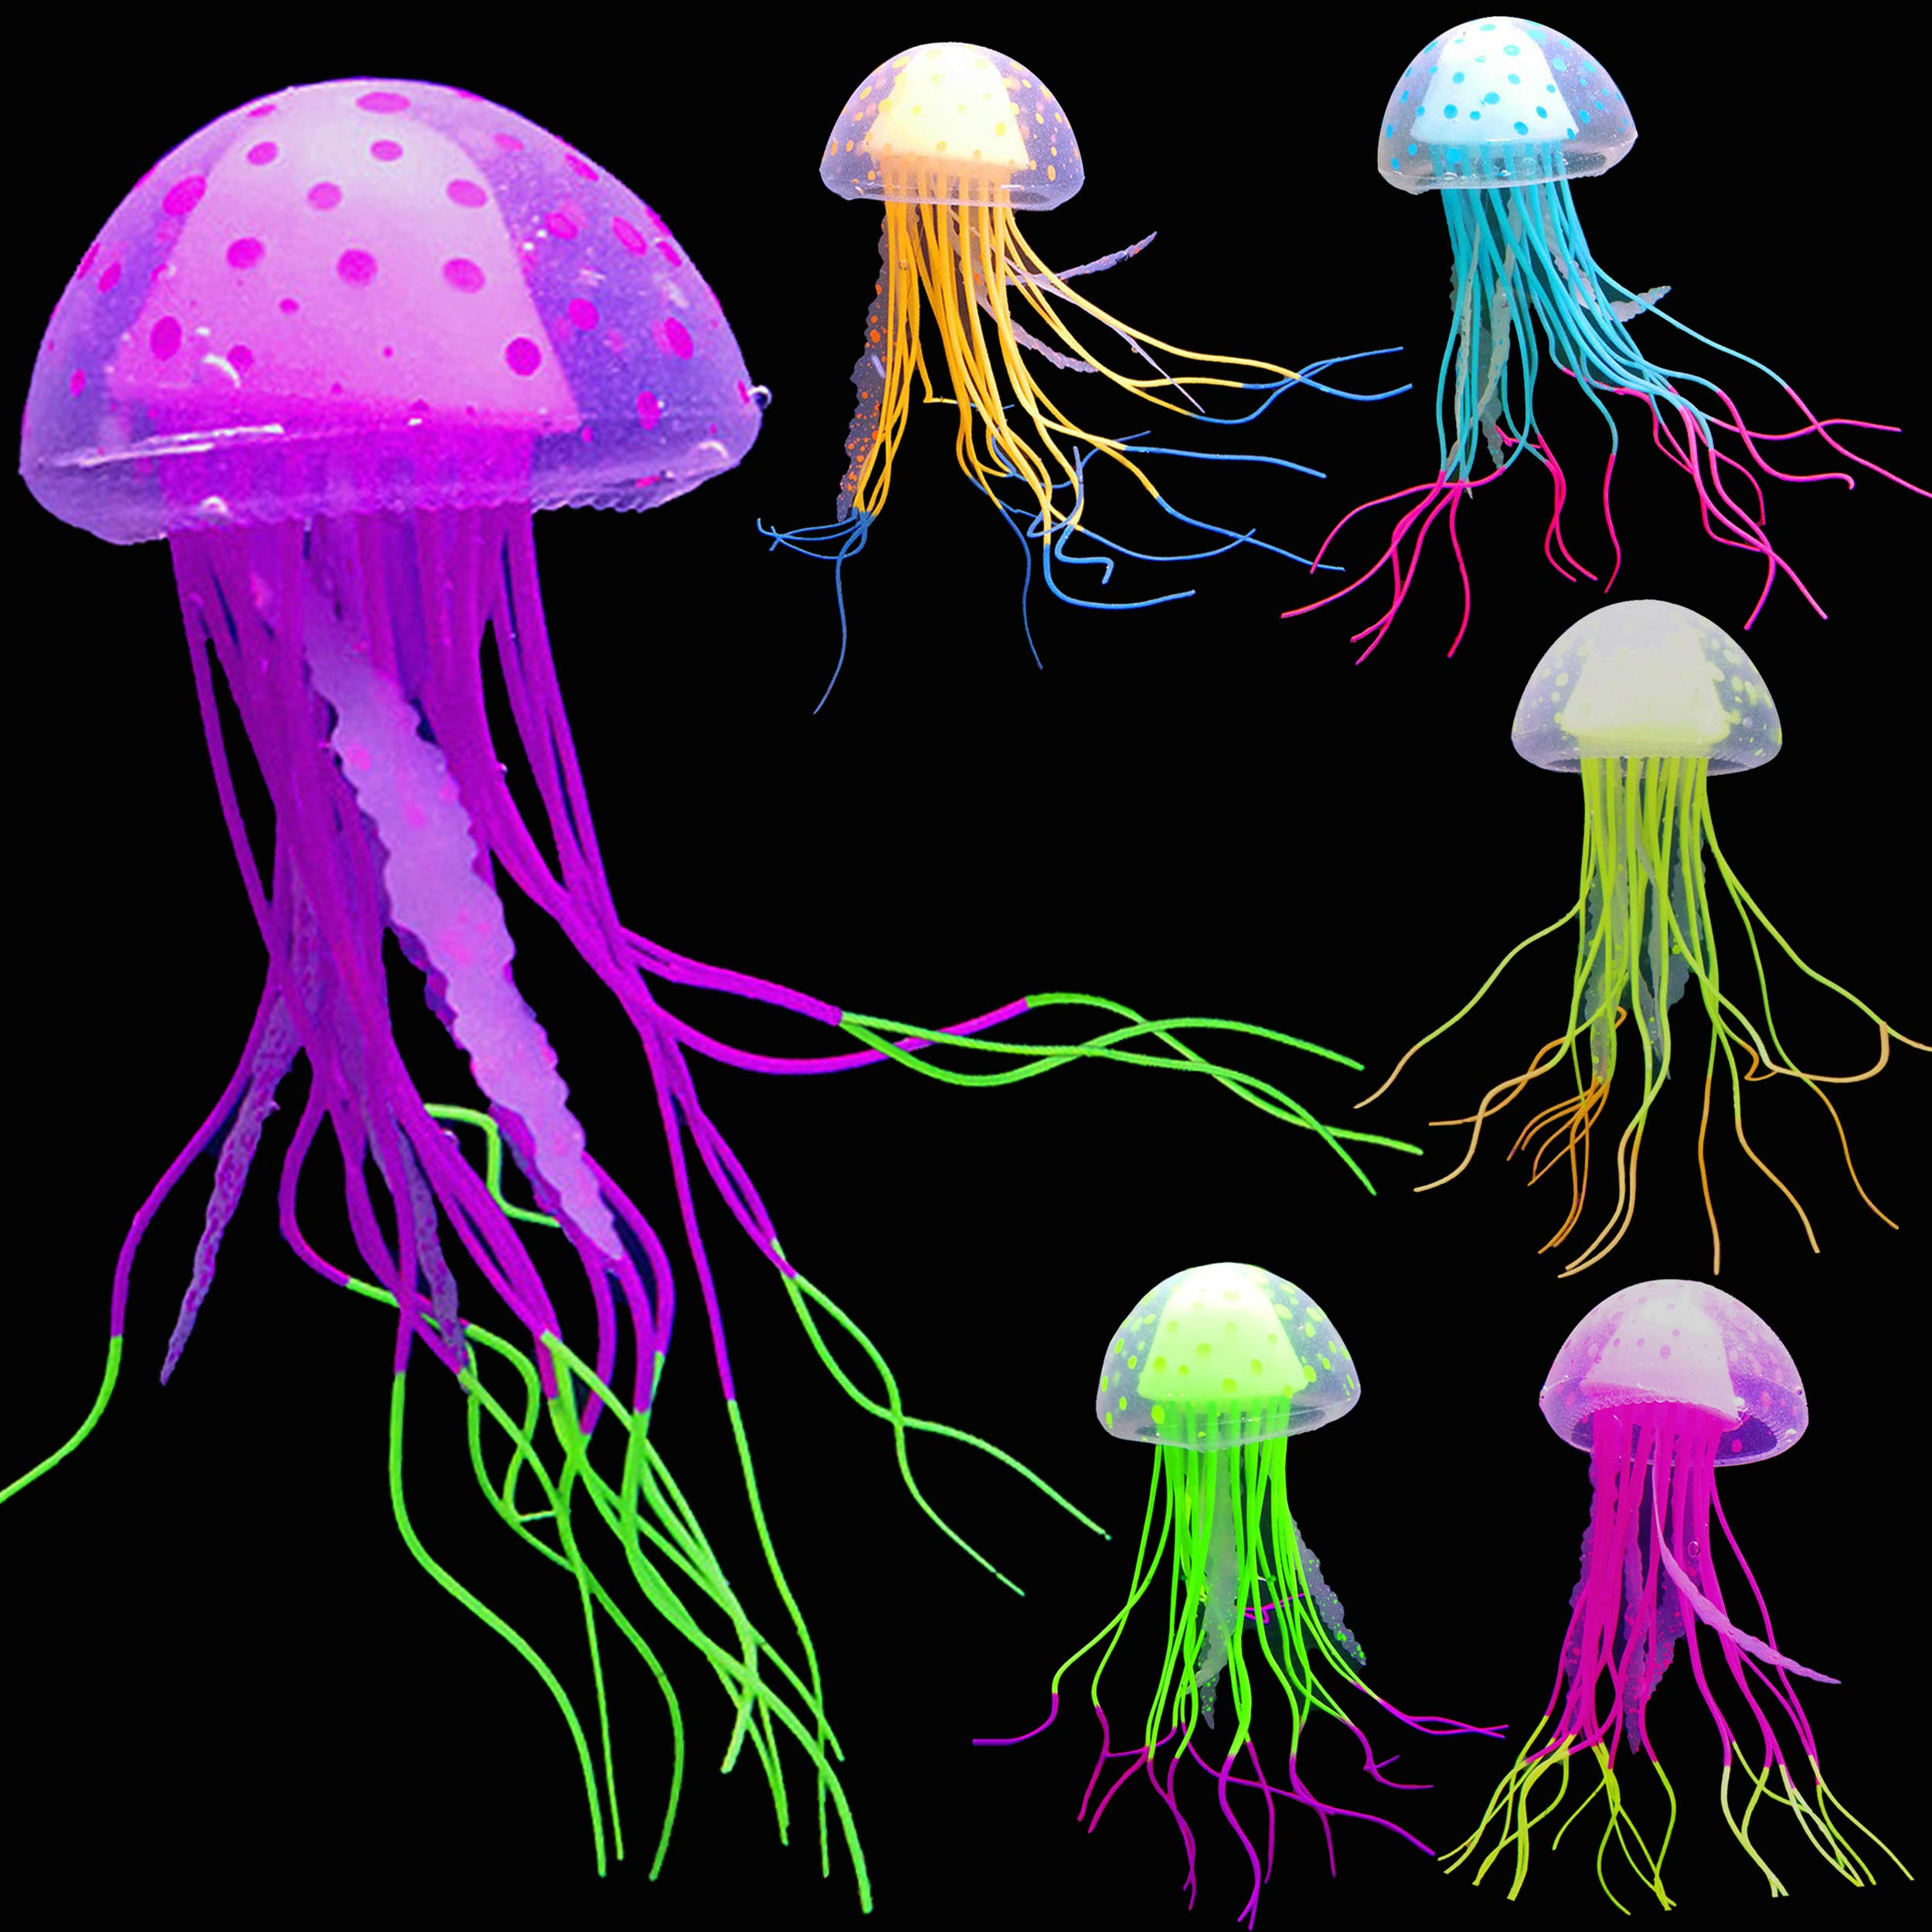 SunKni 6 Pcs Glowing Jellyfish Glow in The Dark Fish Tank Decorations Aquarium Decor Ornament Silicone Artificial Jellyfish 2020 Moon Jellyfish